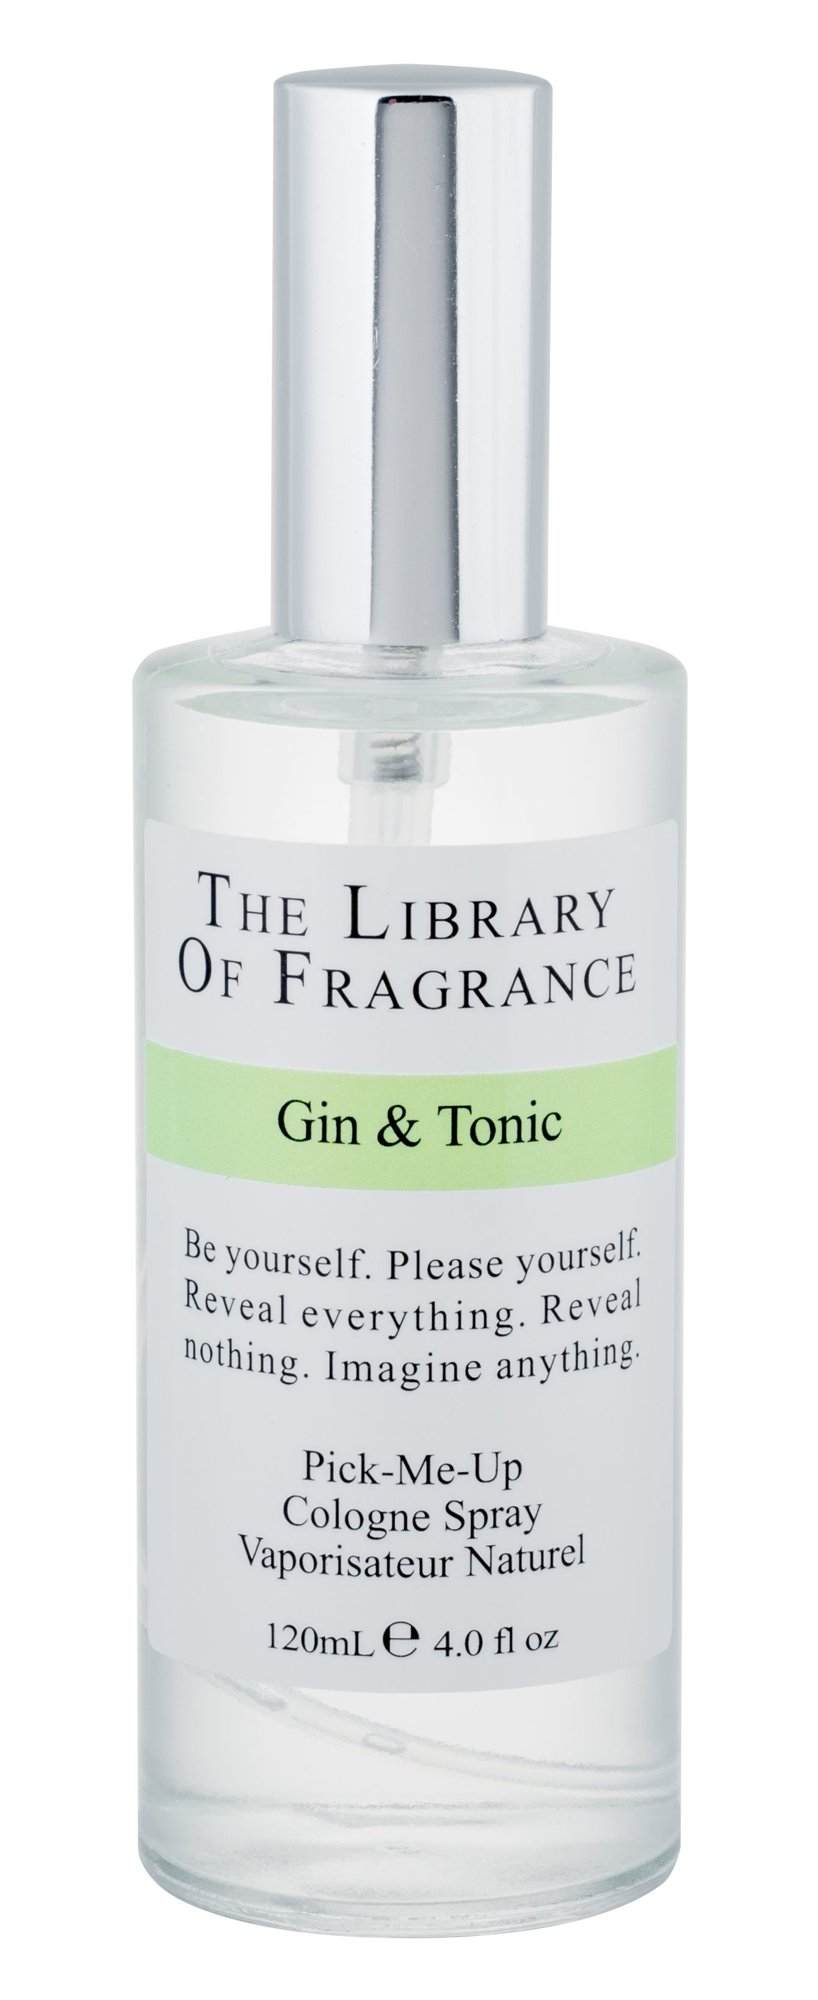 Demeter Gin & Tonic Cologne 120ml